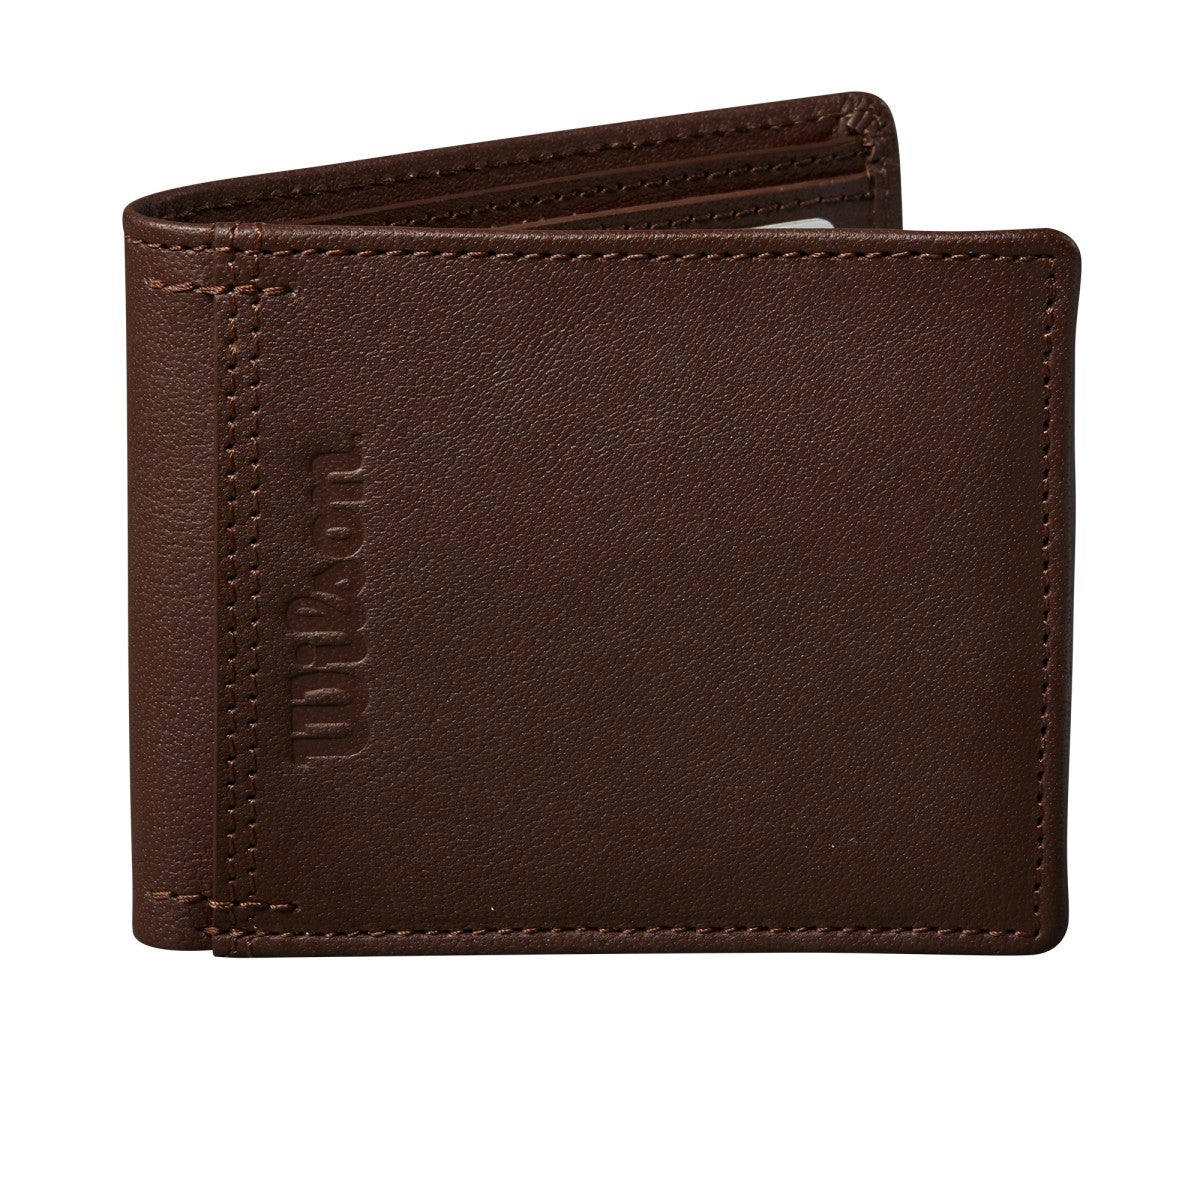 Wilson 1914 Leather Bi-Fold Wallet